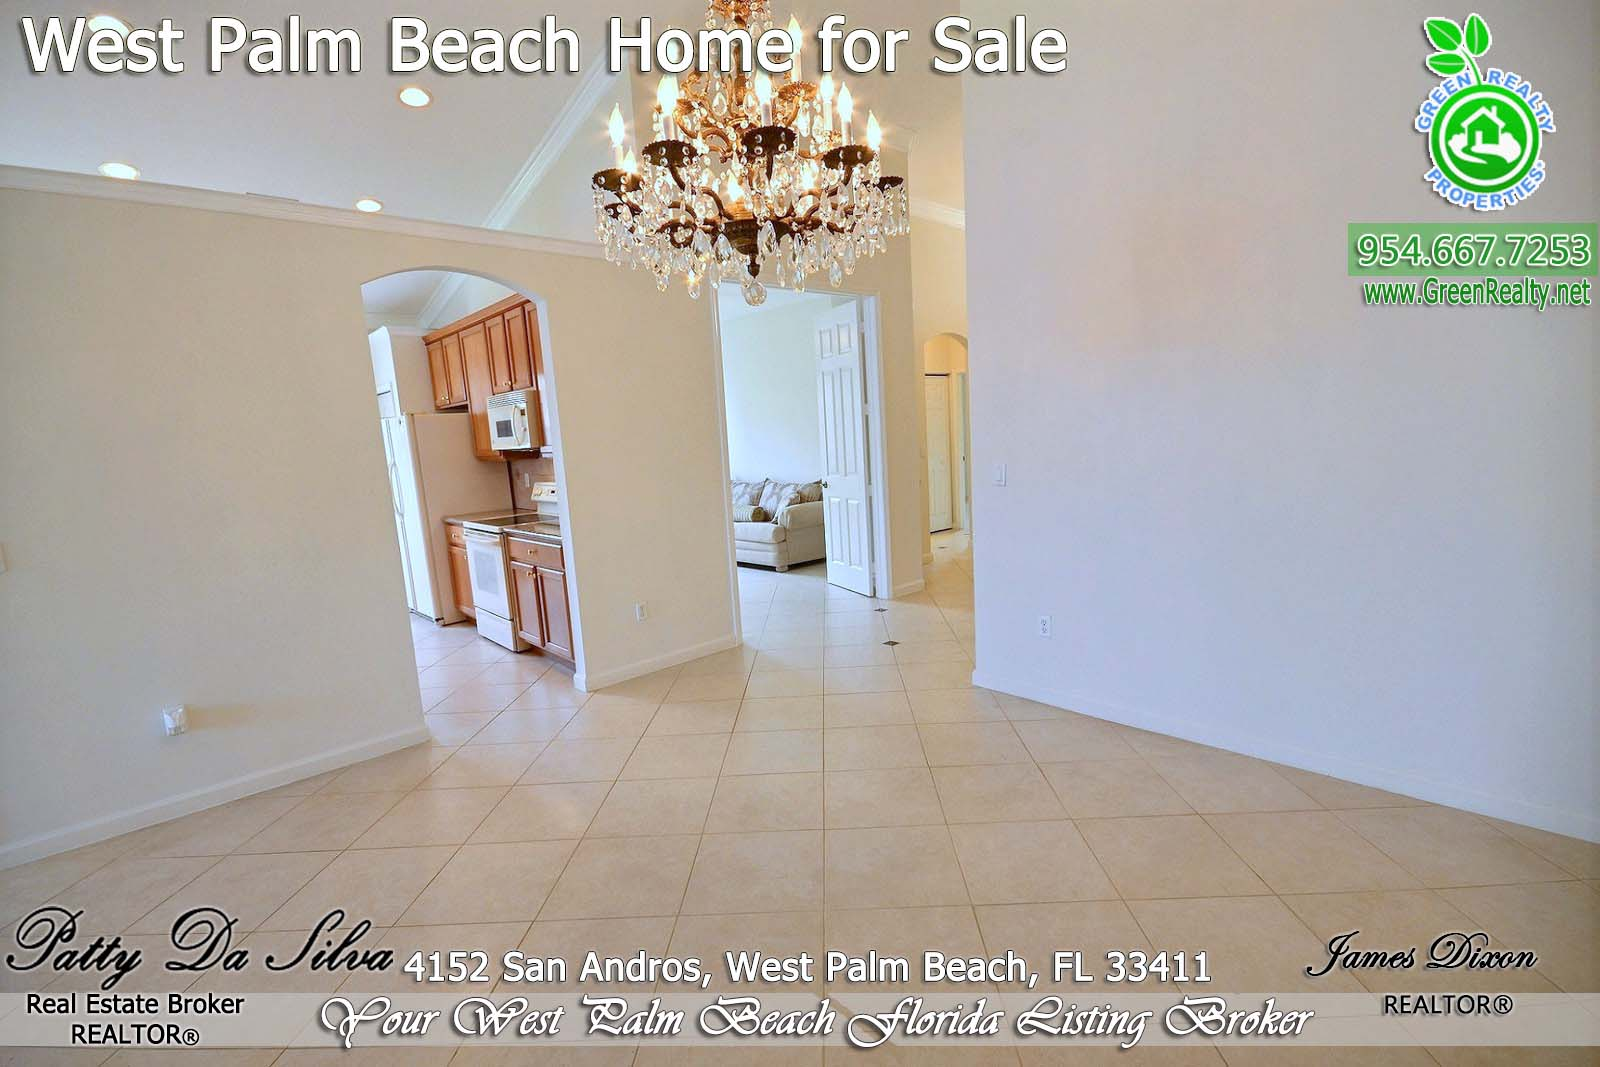 West Palm Beach Real Estate - 4152 San Andros (11)_1